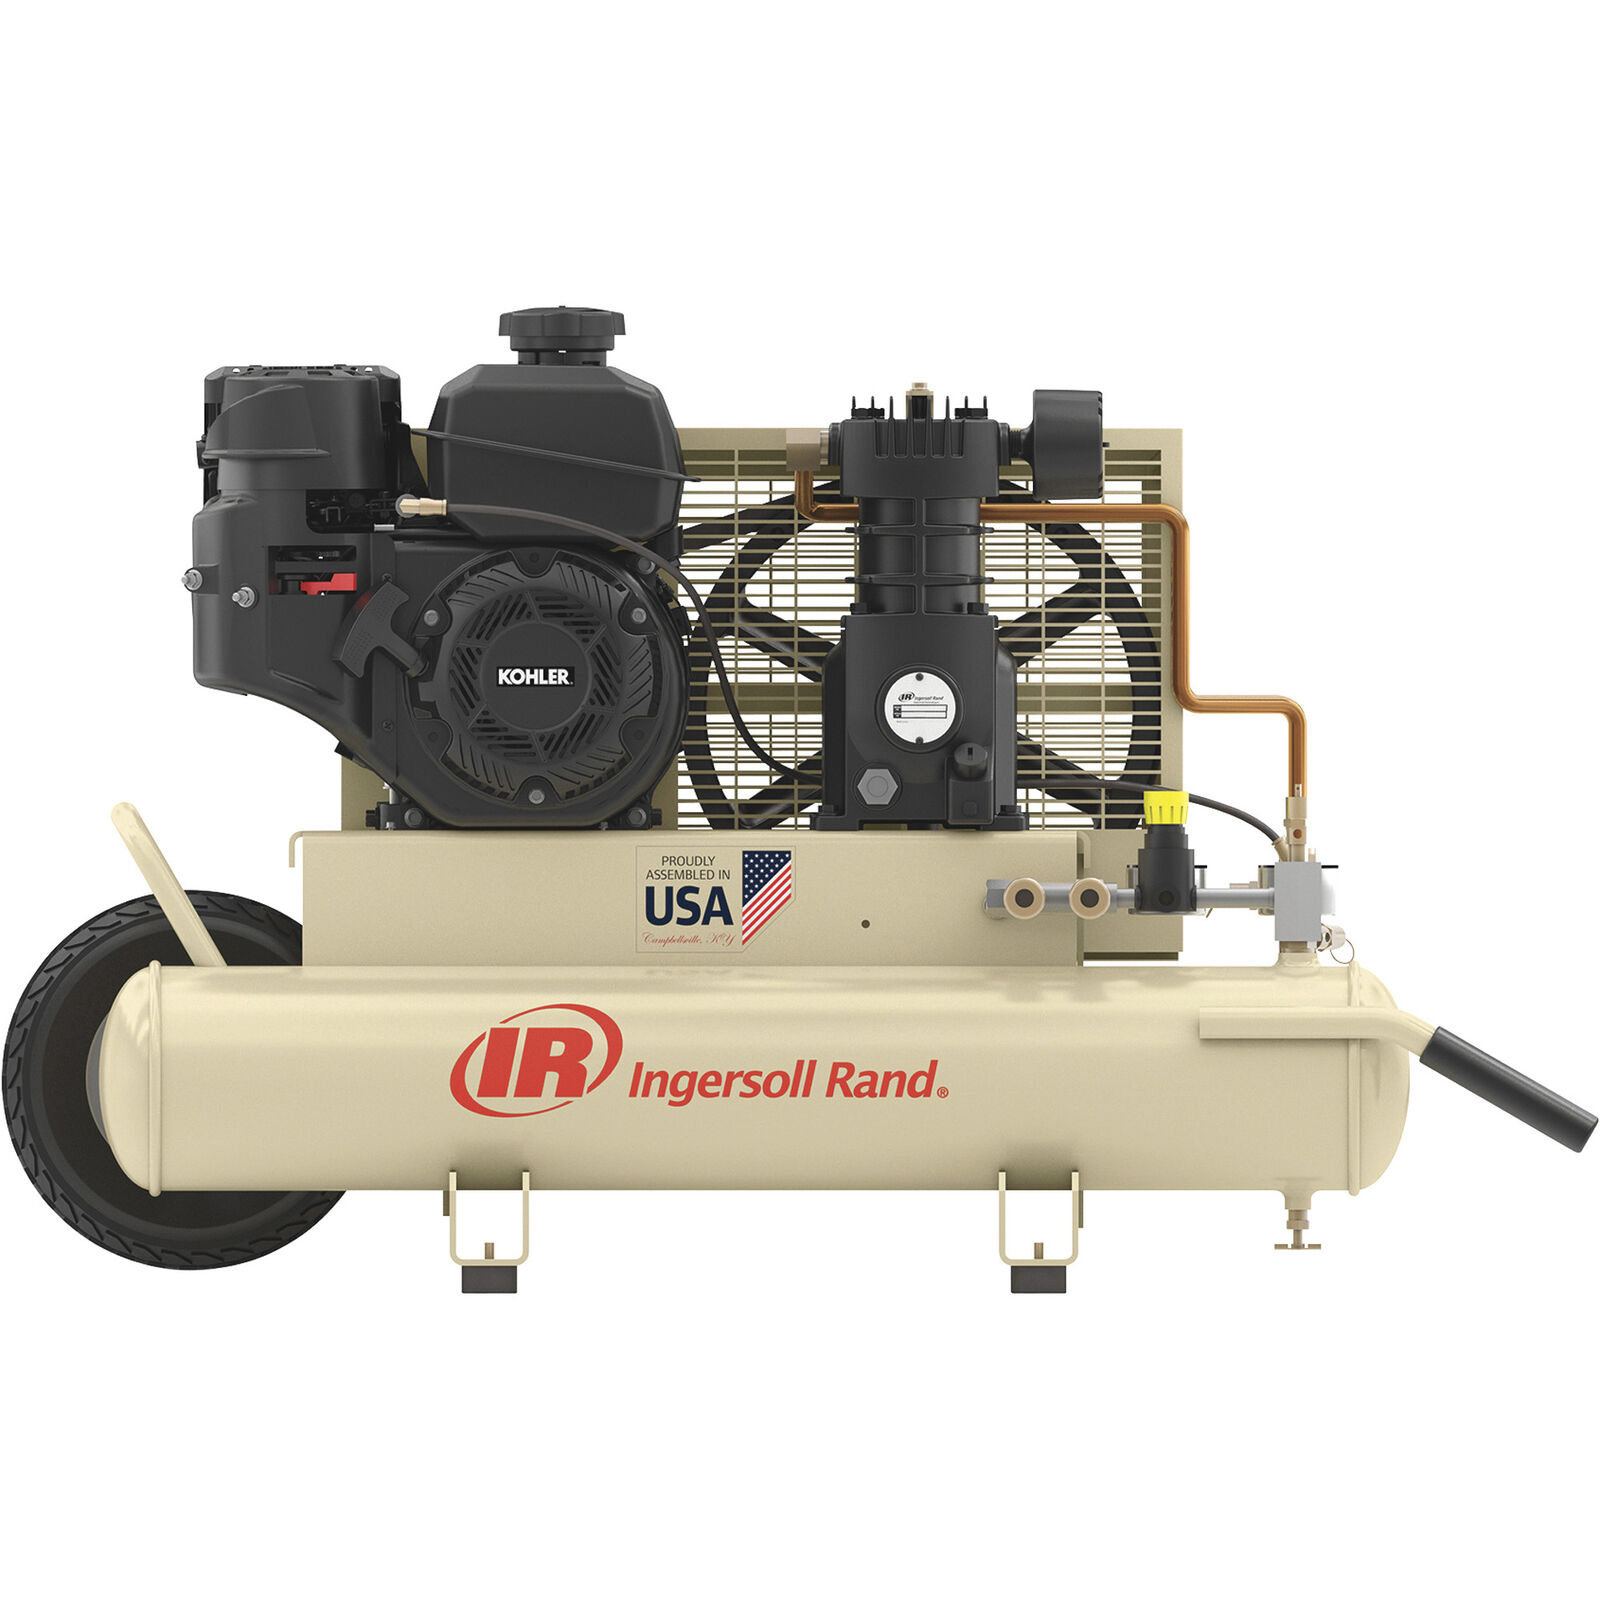 Ingersoll Rand RS30n-A118-TAS W/Integrated Dryer, 40HP